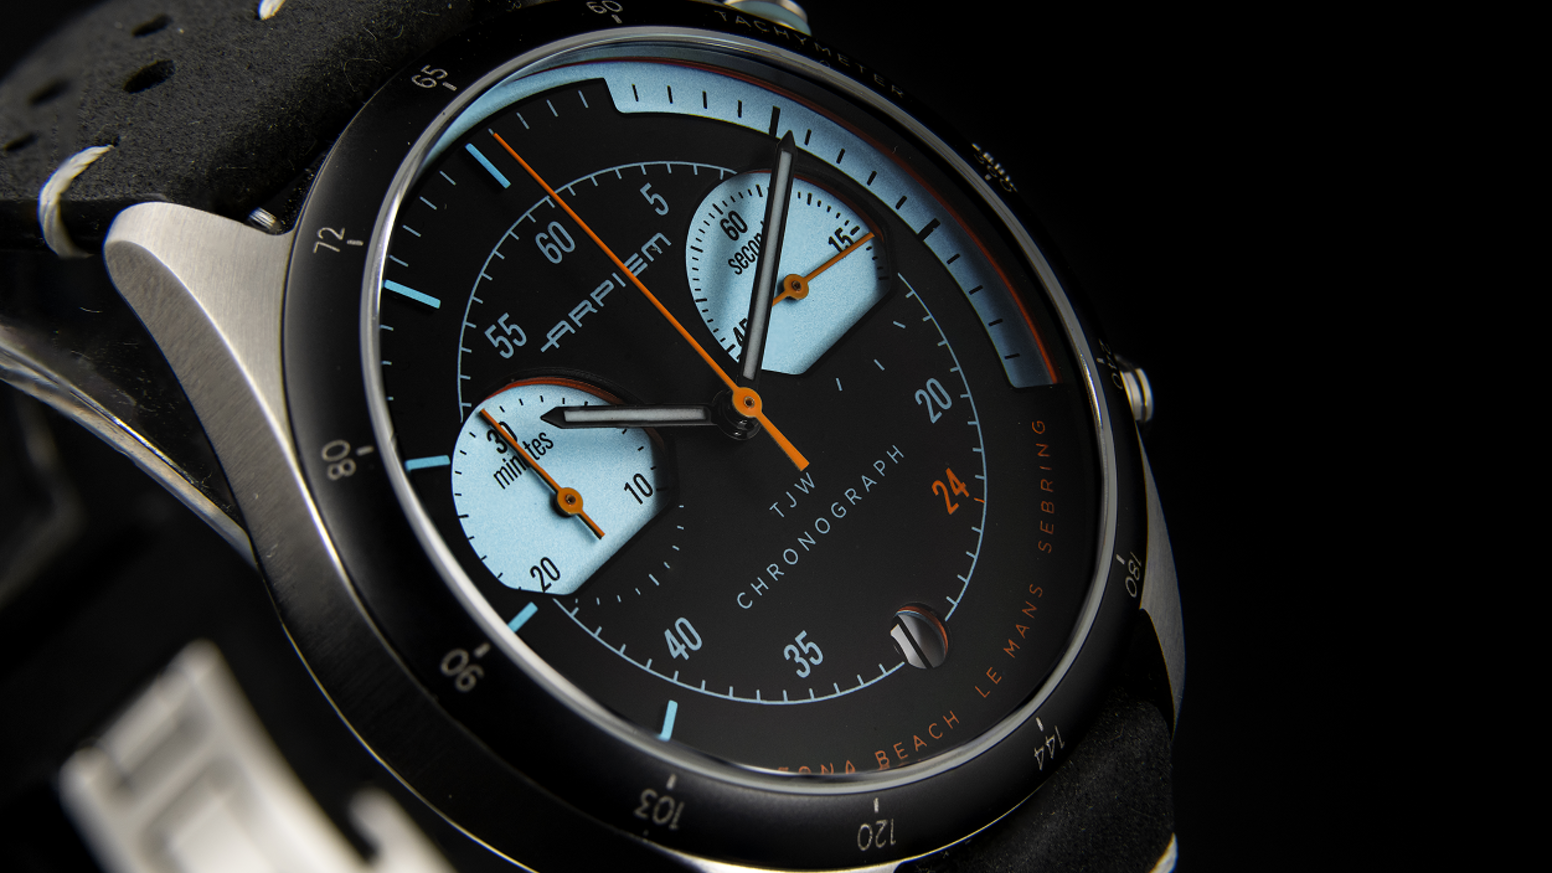 A Collection of 4 chrono watches inspired by the golden years of motor racing. A true racing watch that tells a story.